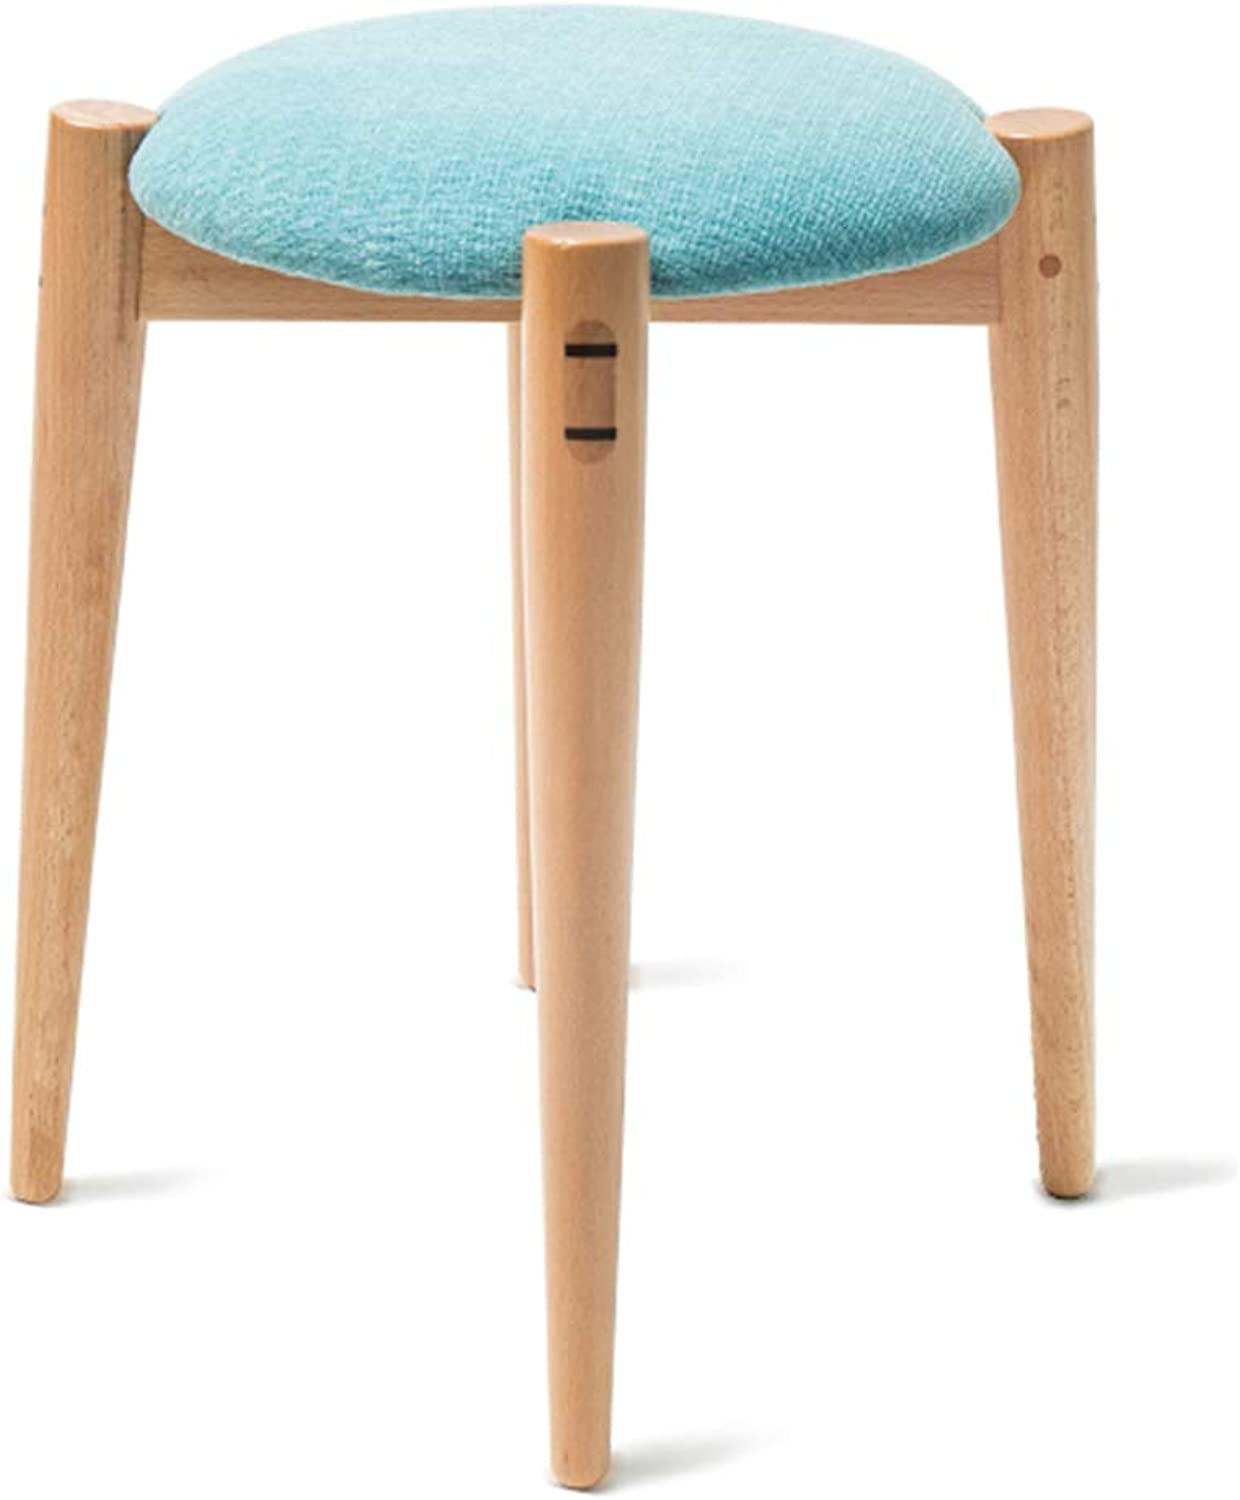 FXNN Chair - Multi-Function Solid Wood Living Room Small Square Bedroom Small Stool (color   bluee, Size   30  43cm)